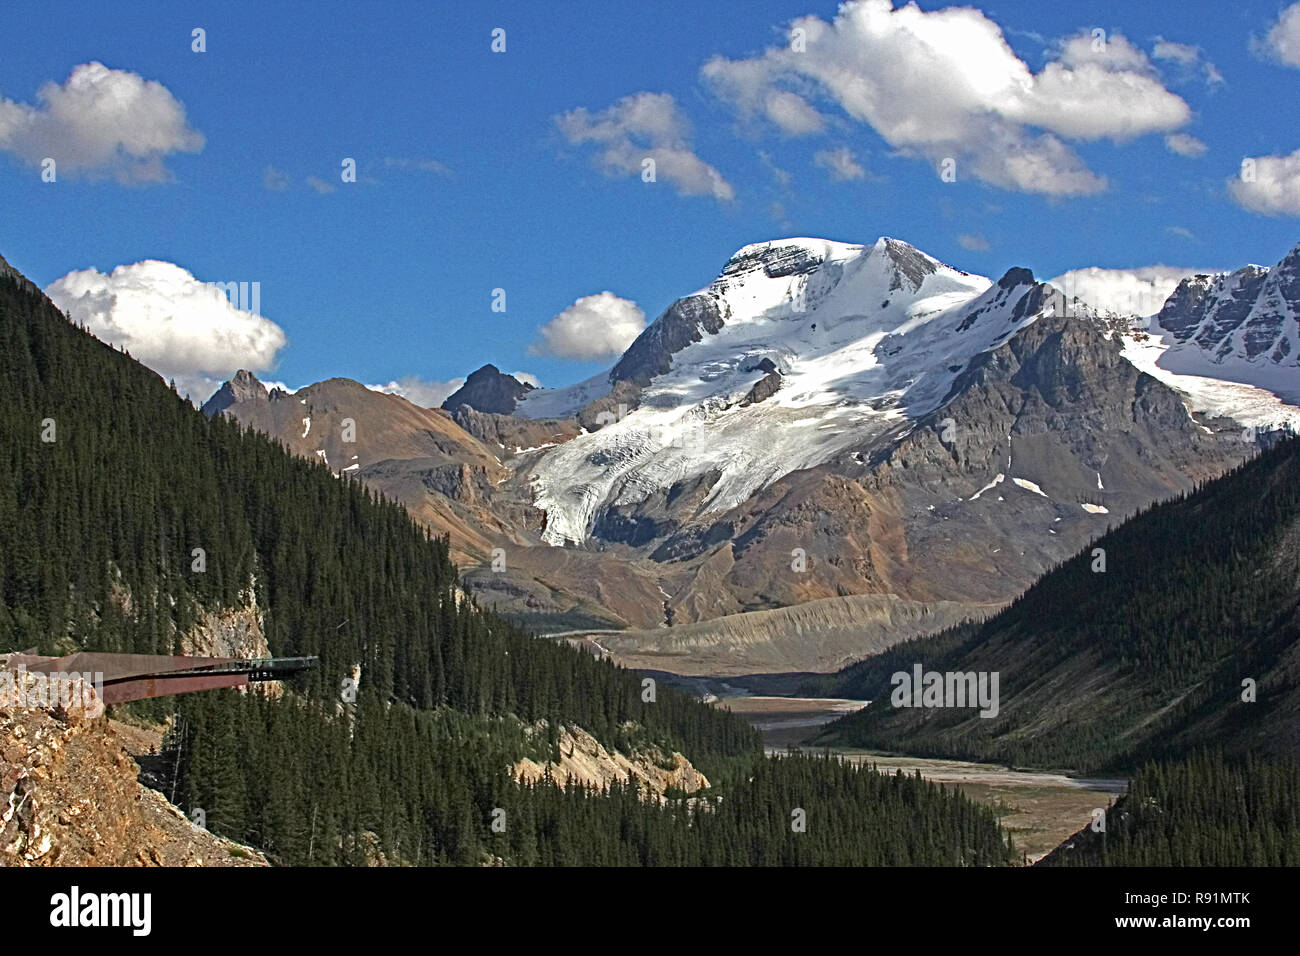 The Glacier Skywalk is  along Icefields Parkway, # 93,  from Banff to Jasper as it winds through the Canadian Rockies. - Stock Image